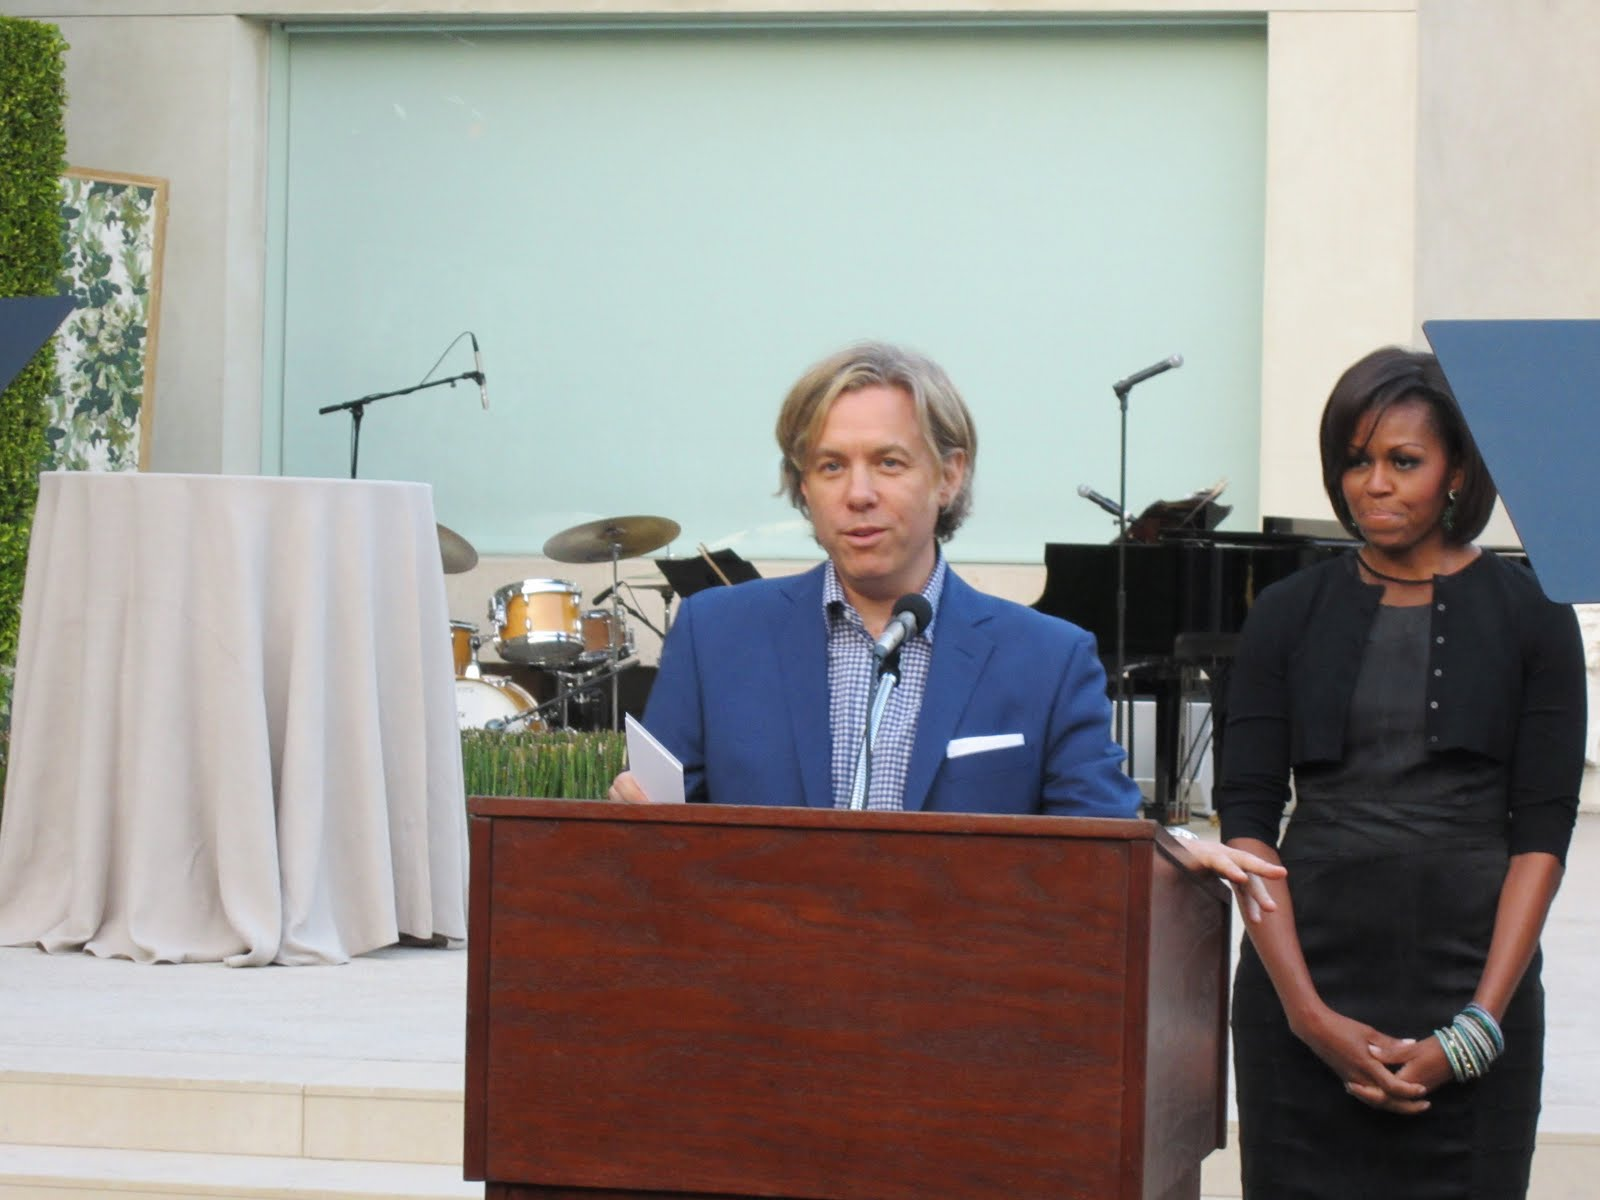 Michael welcomed guests to his home and introduced Mrs. Obama. (above